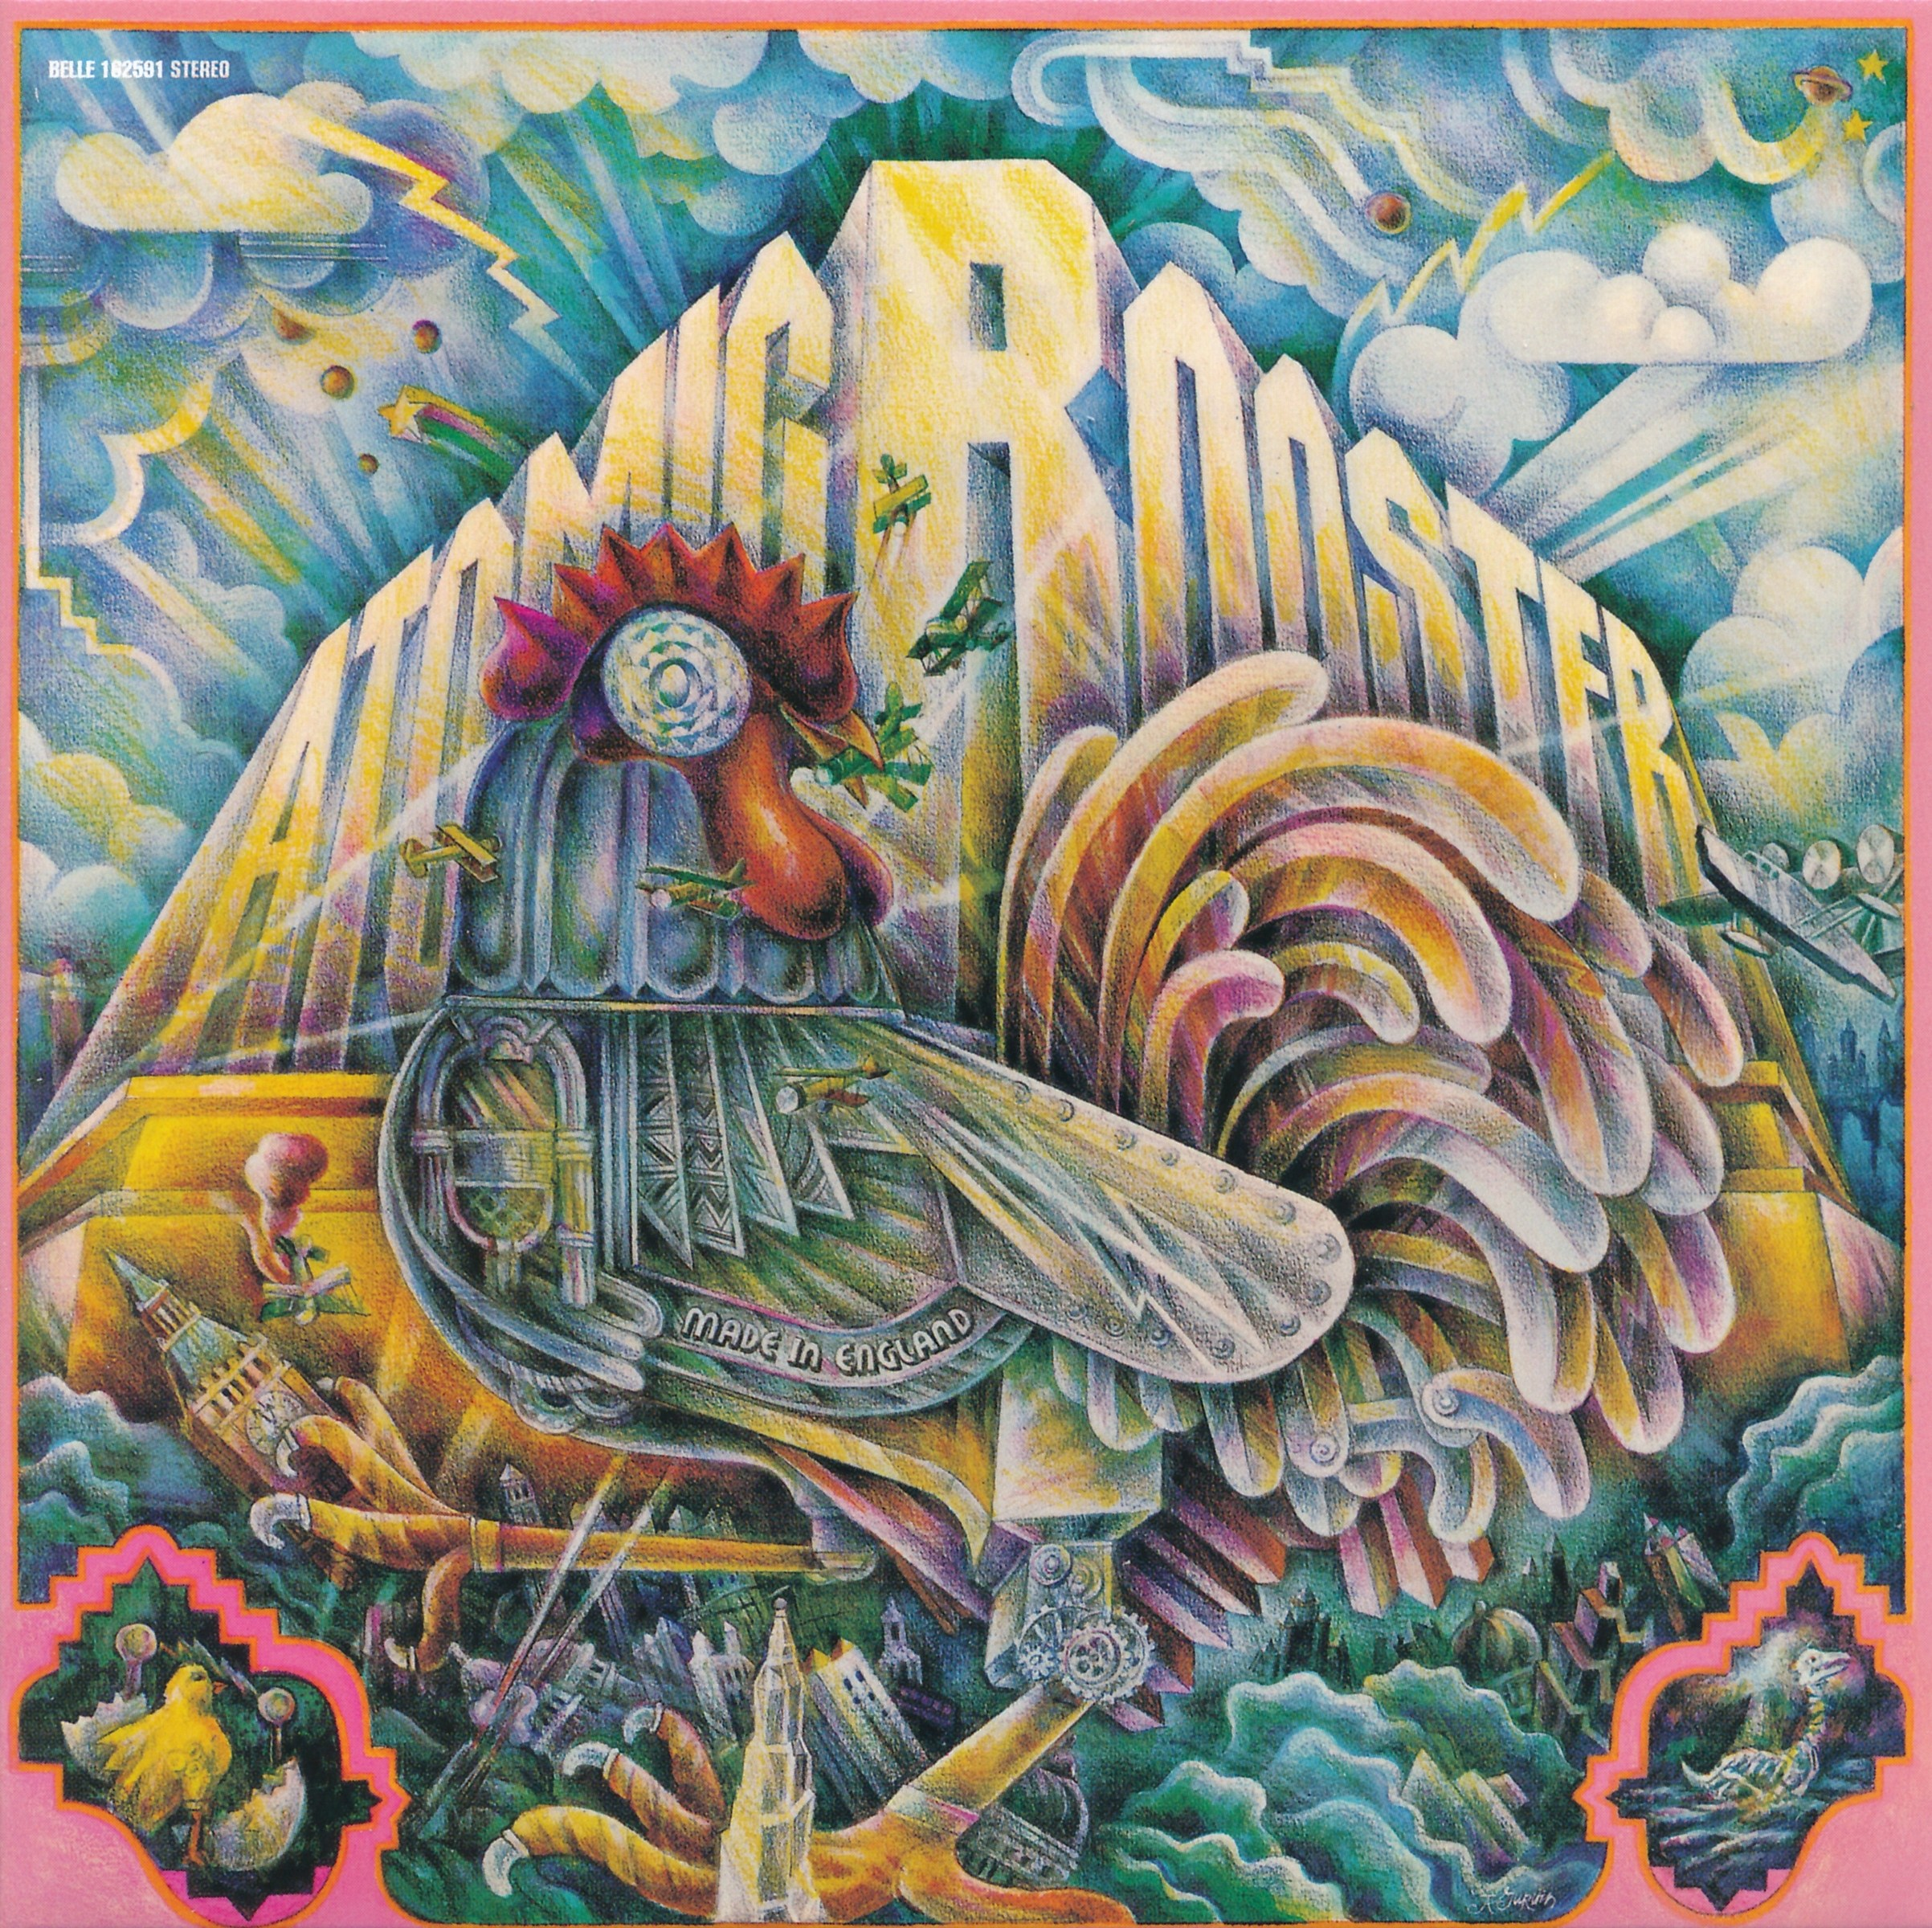 Atomic Rooster - Never To Lose